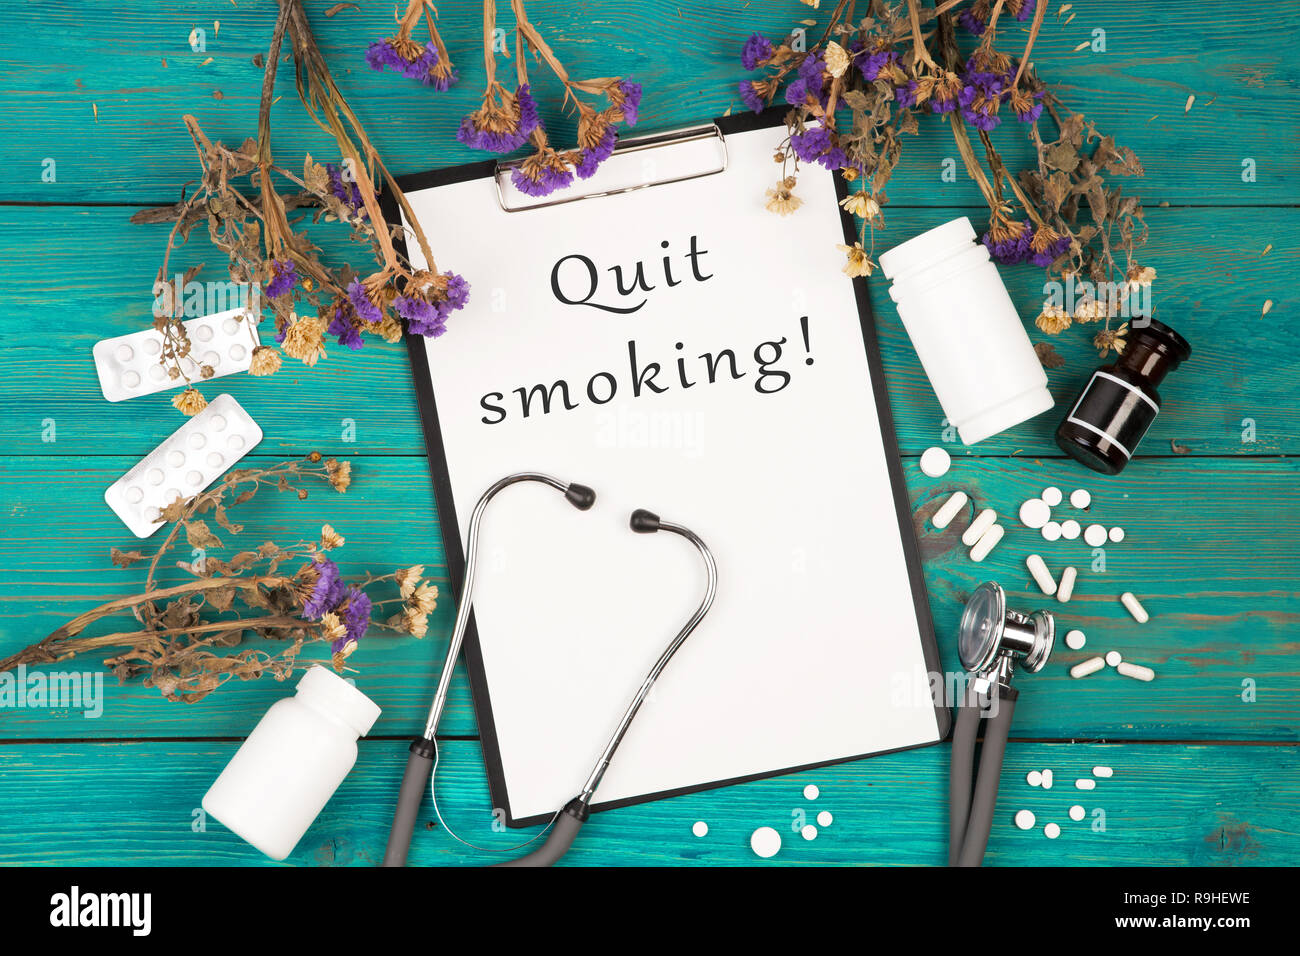 Workplace of doctor - stethoscope, medicine clipboard with text 'Quit smoking!', bottle and pills on blue wooden table - Stock Image